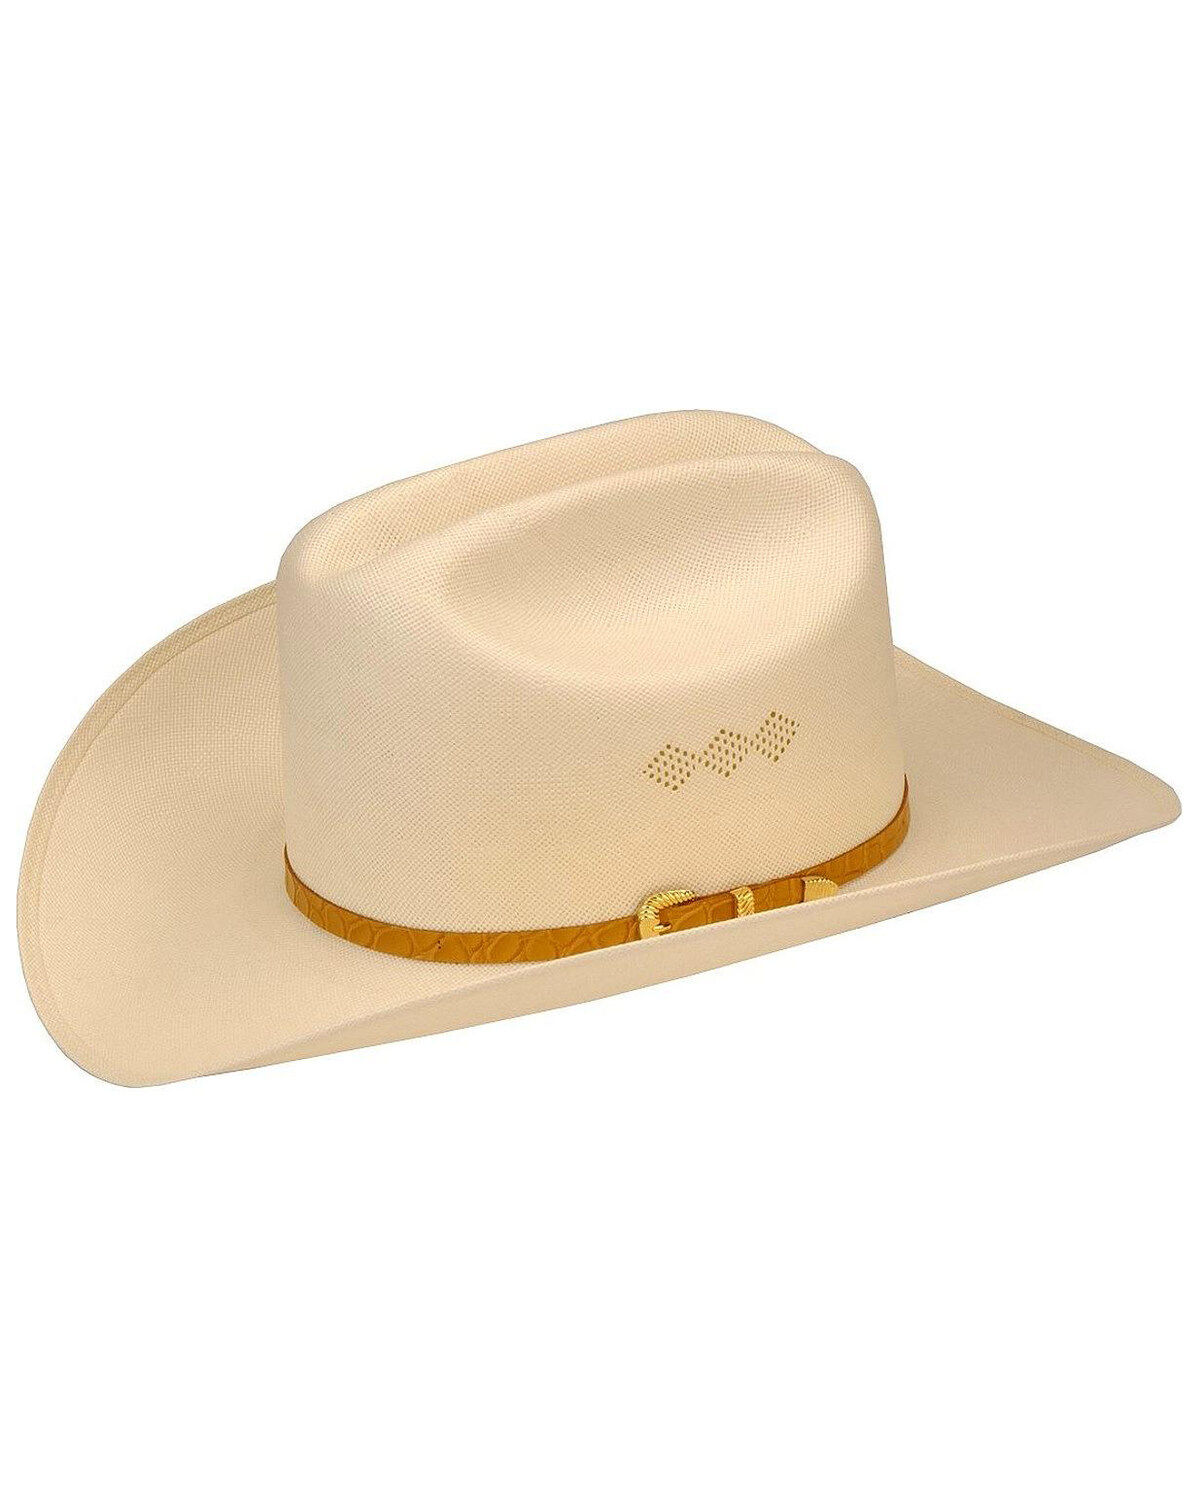 c9db31c3eb7b8 Men s Straw Western Hats